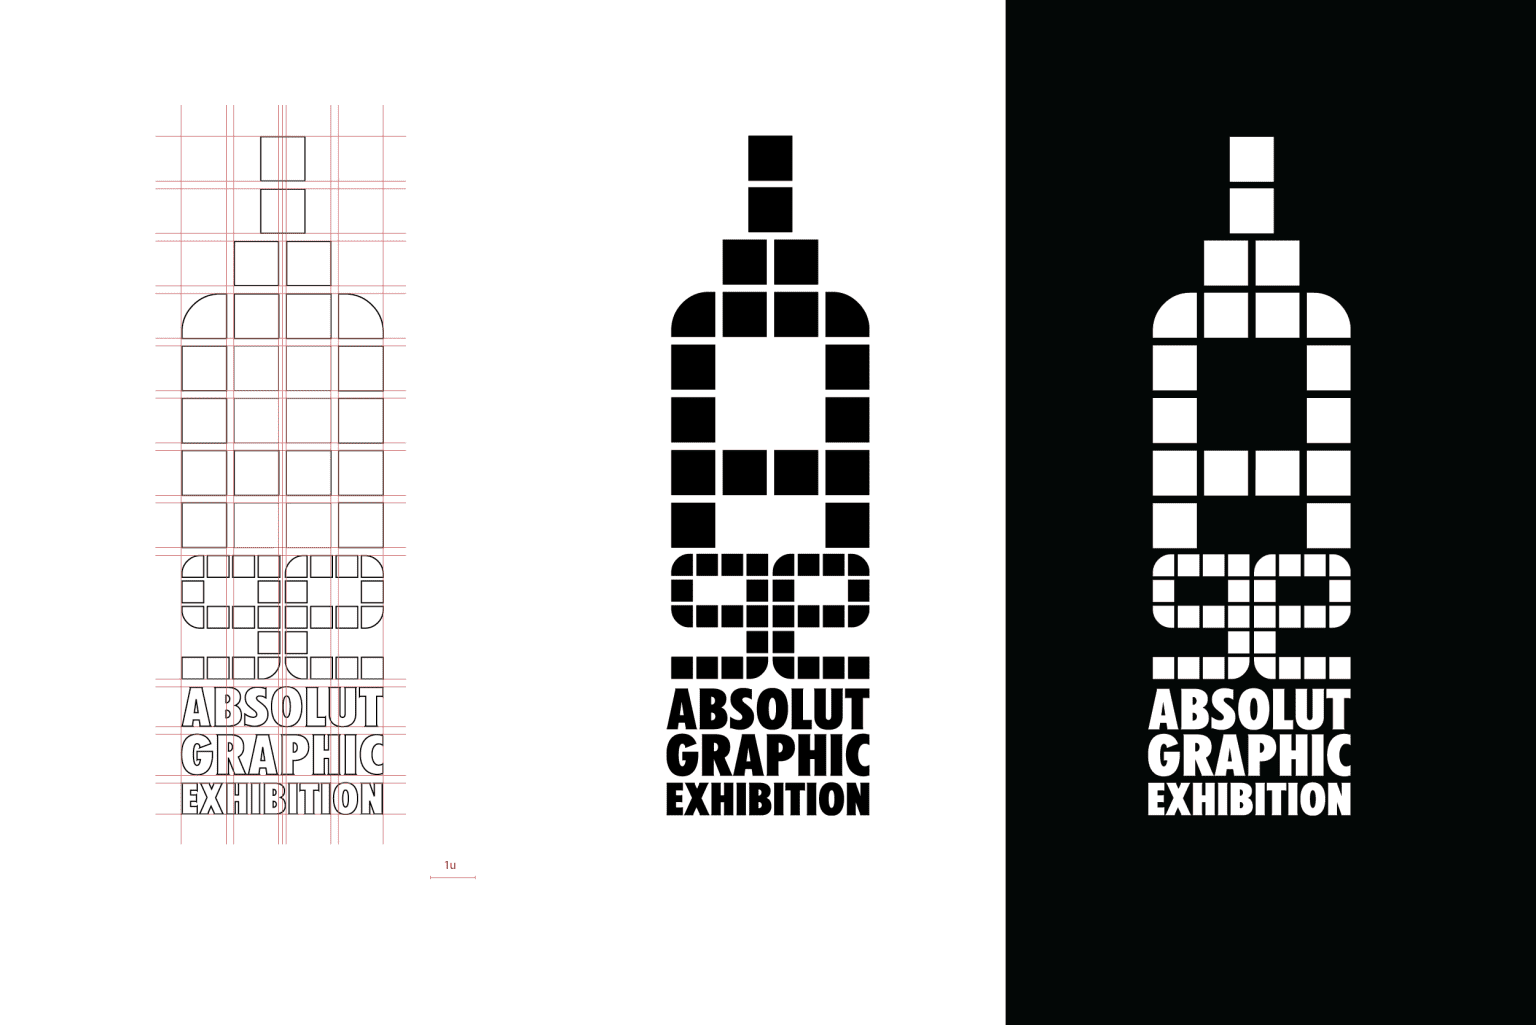 AGE - Absolute Graphic Exhibition